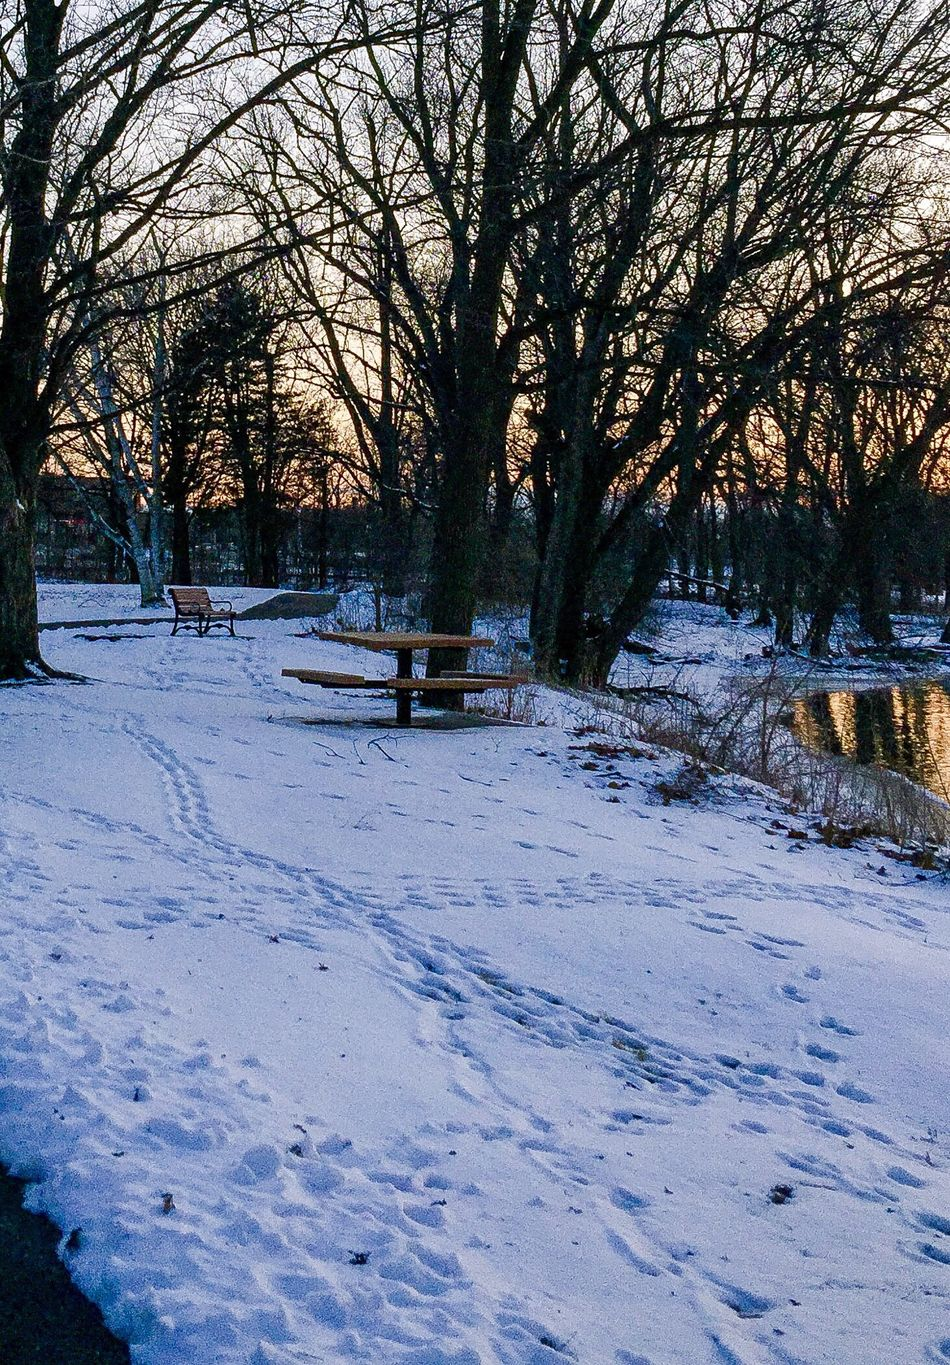 Winter Wonderland Snow Covered Bench Picknickbench BareTrees Footsteps Oswego, IL IPhoneography Tranquil Scene